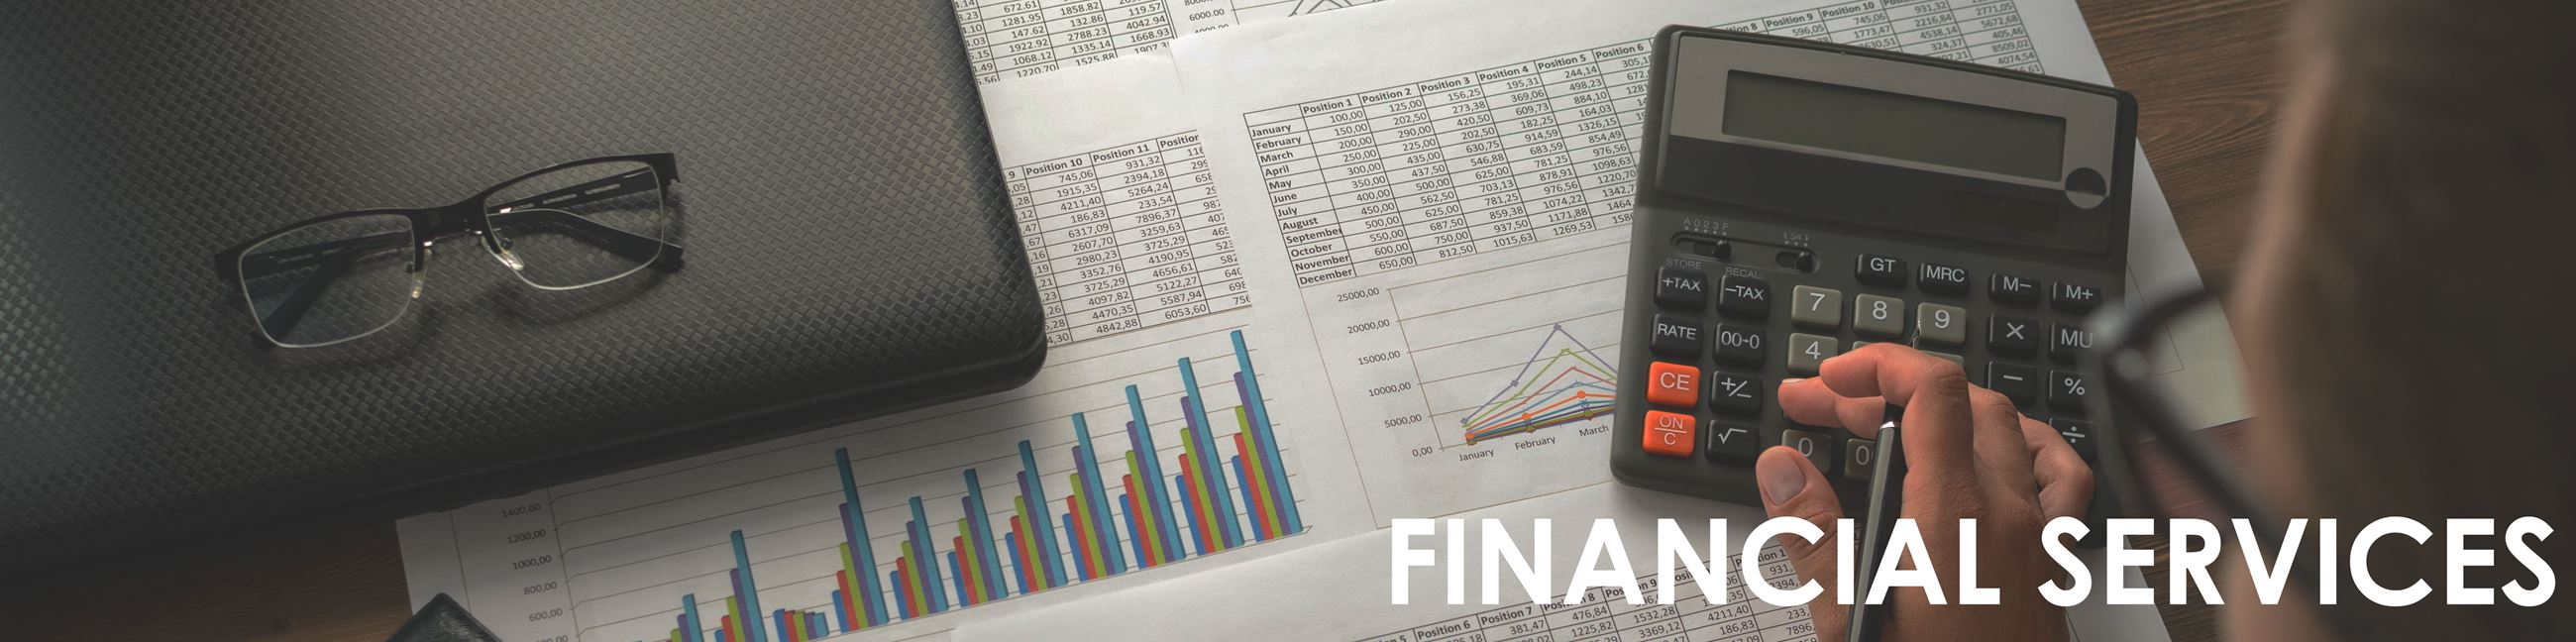 """Financial Services"" image of financial charts"